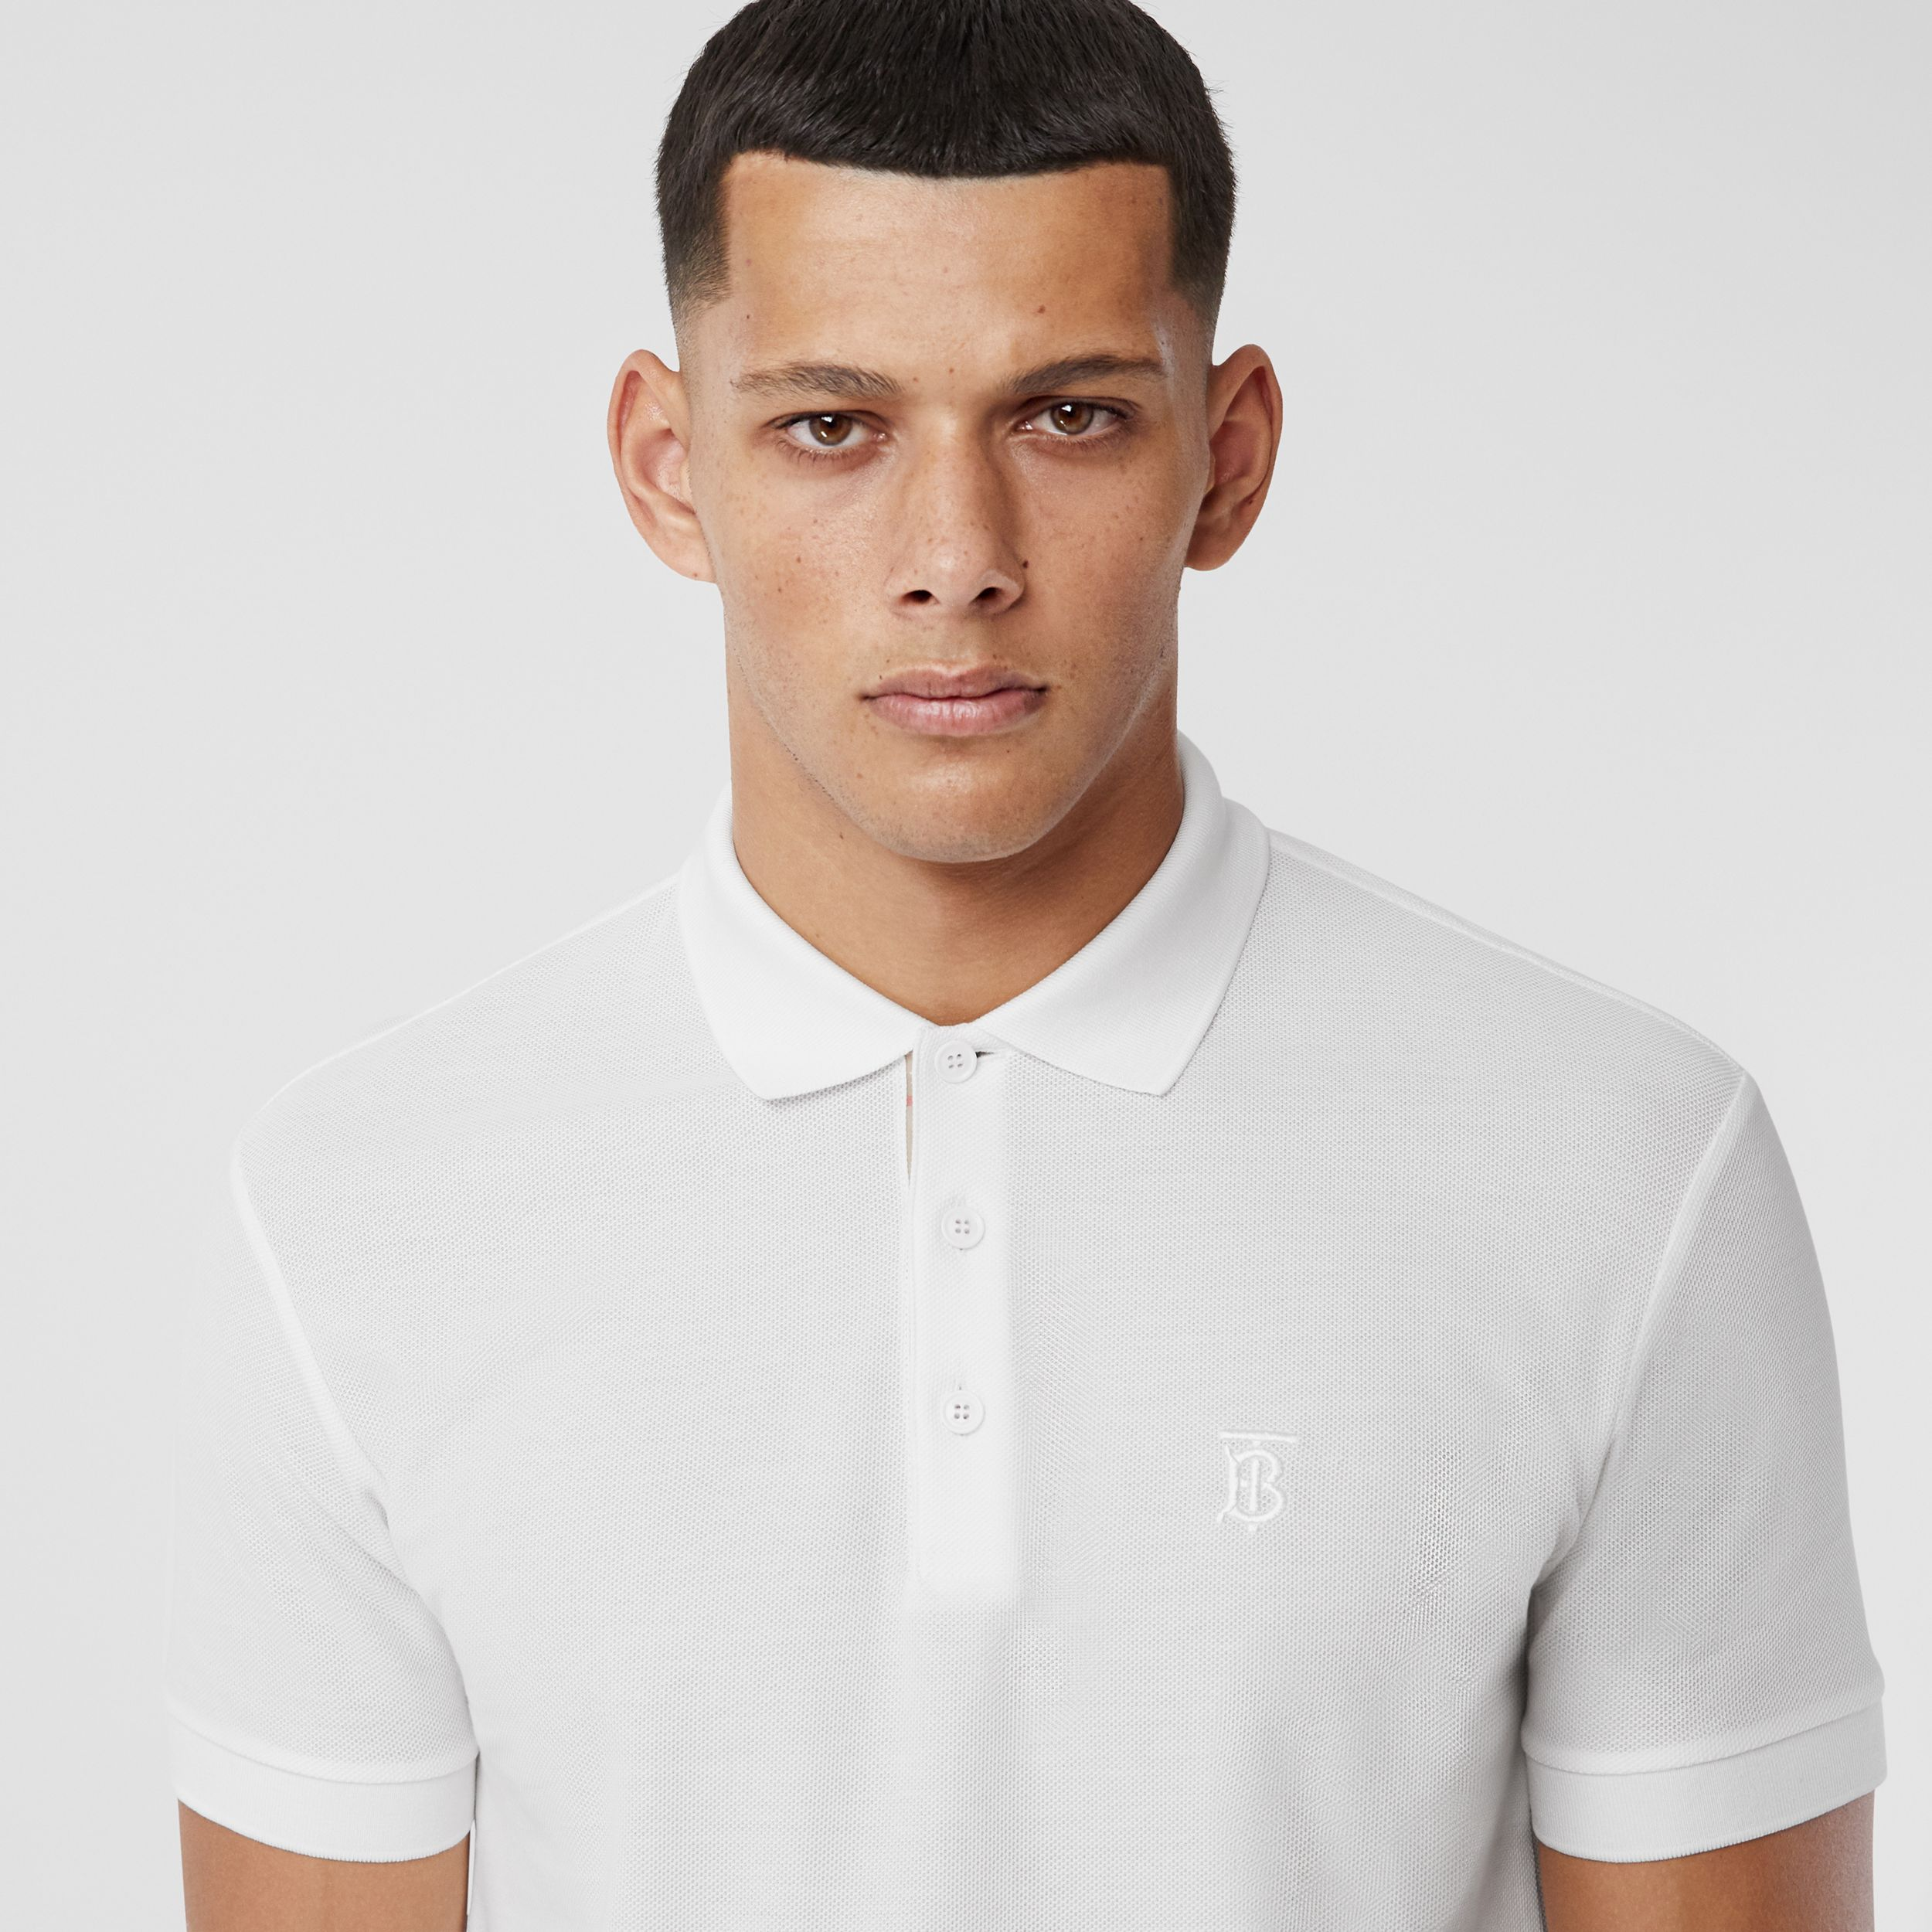 Monogram Motif Cotton Piqué Polo Shirt in White - Men | Burberry - 2